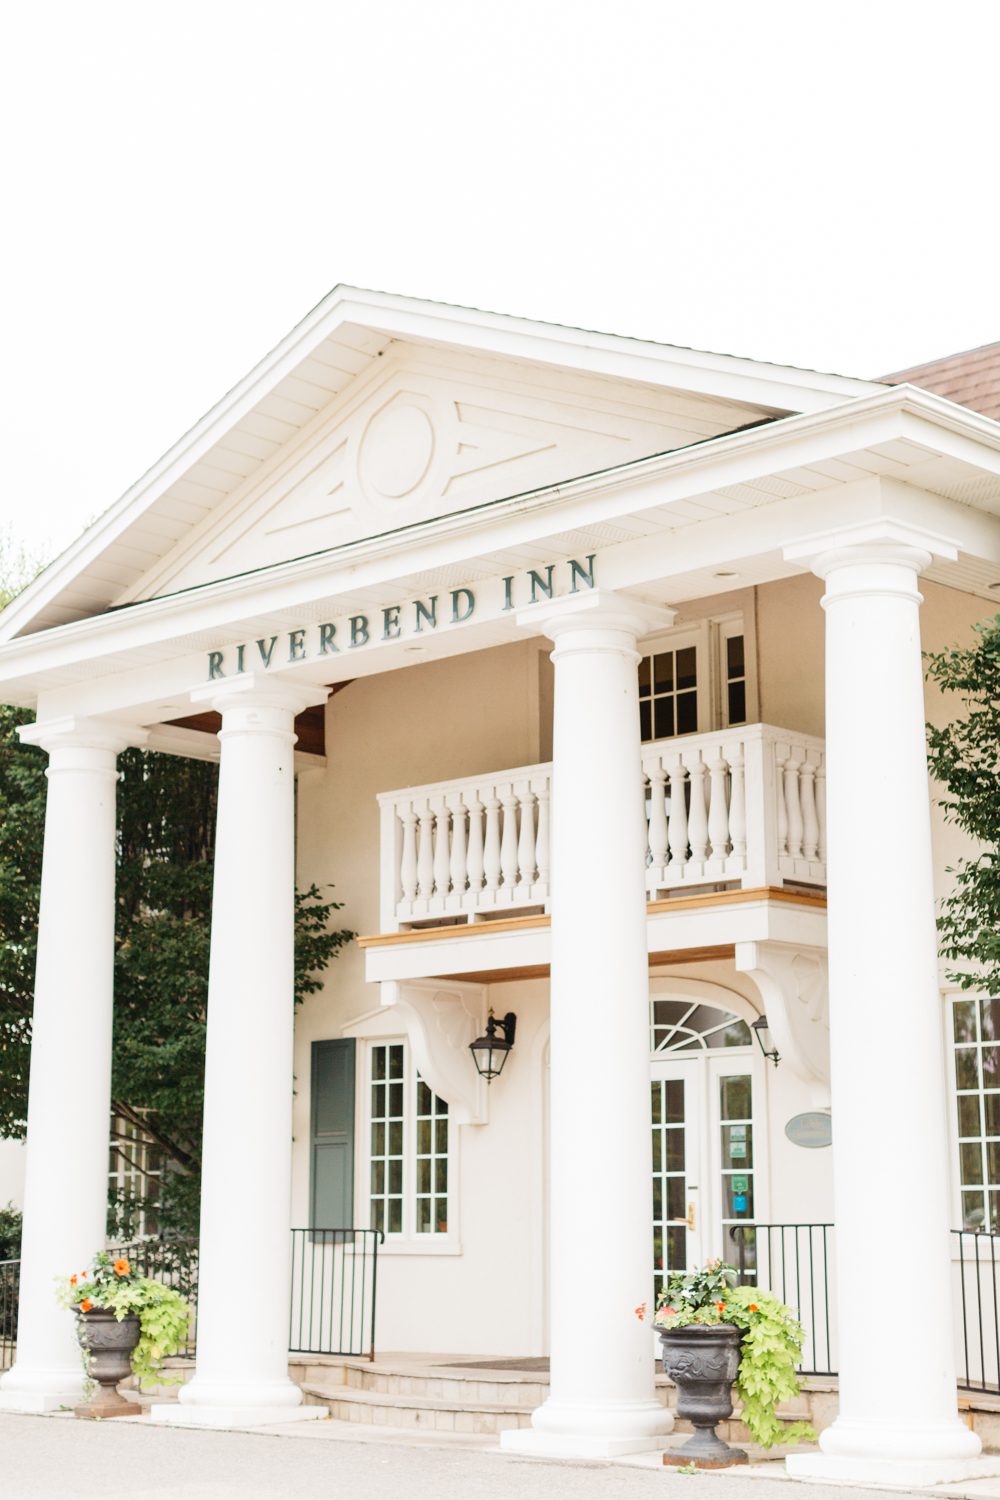 Riverbend Inn Hotel in Niagara on The Lake